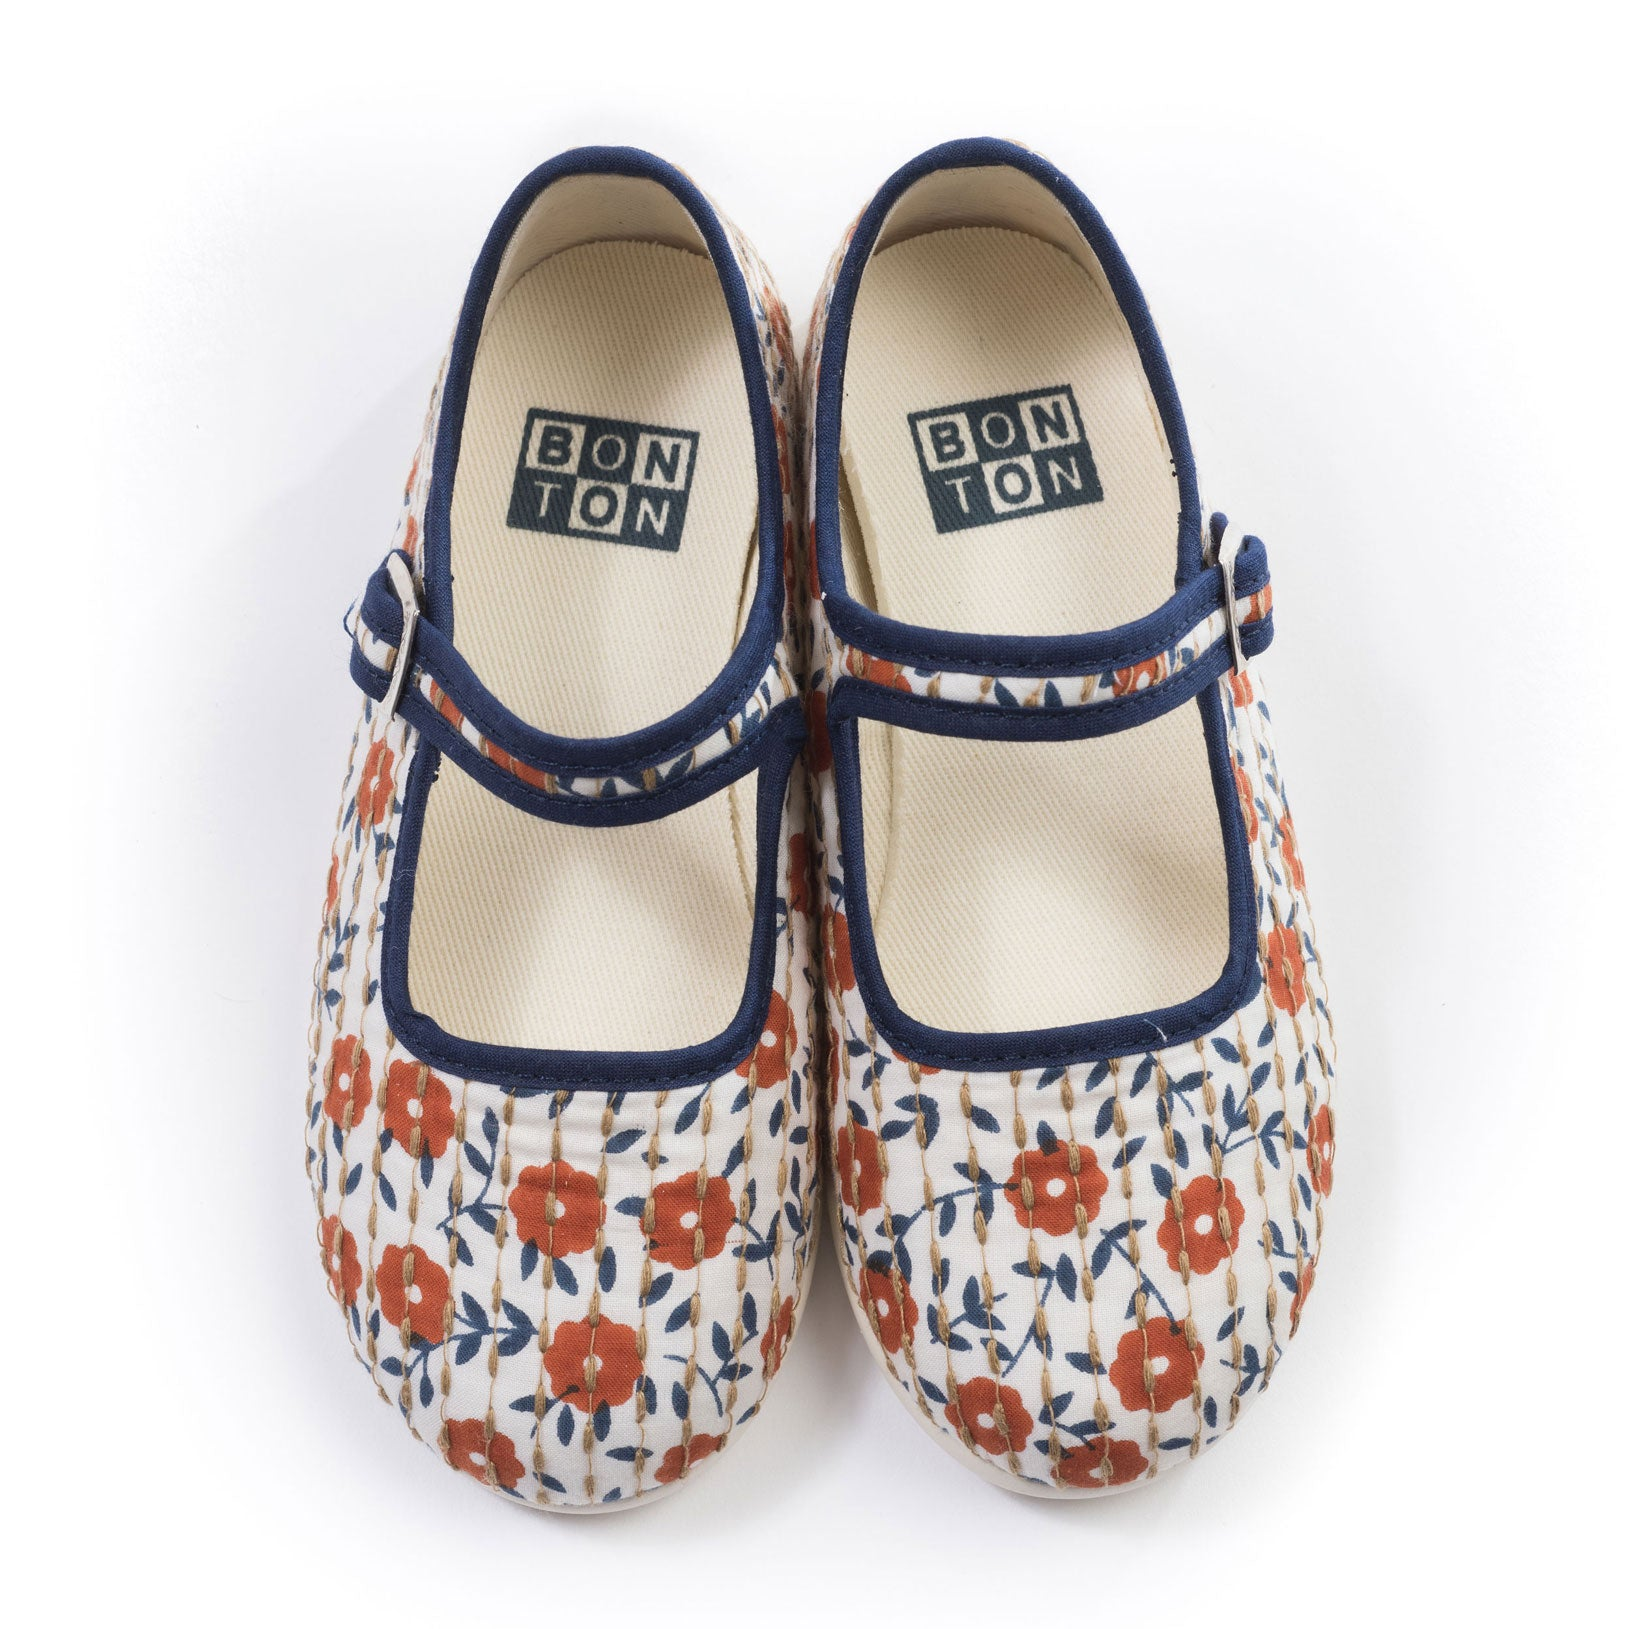 Bonton Orange Floral Stitched Mary Janes